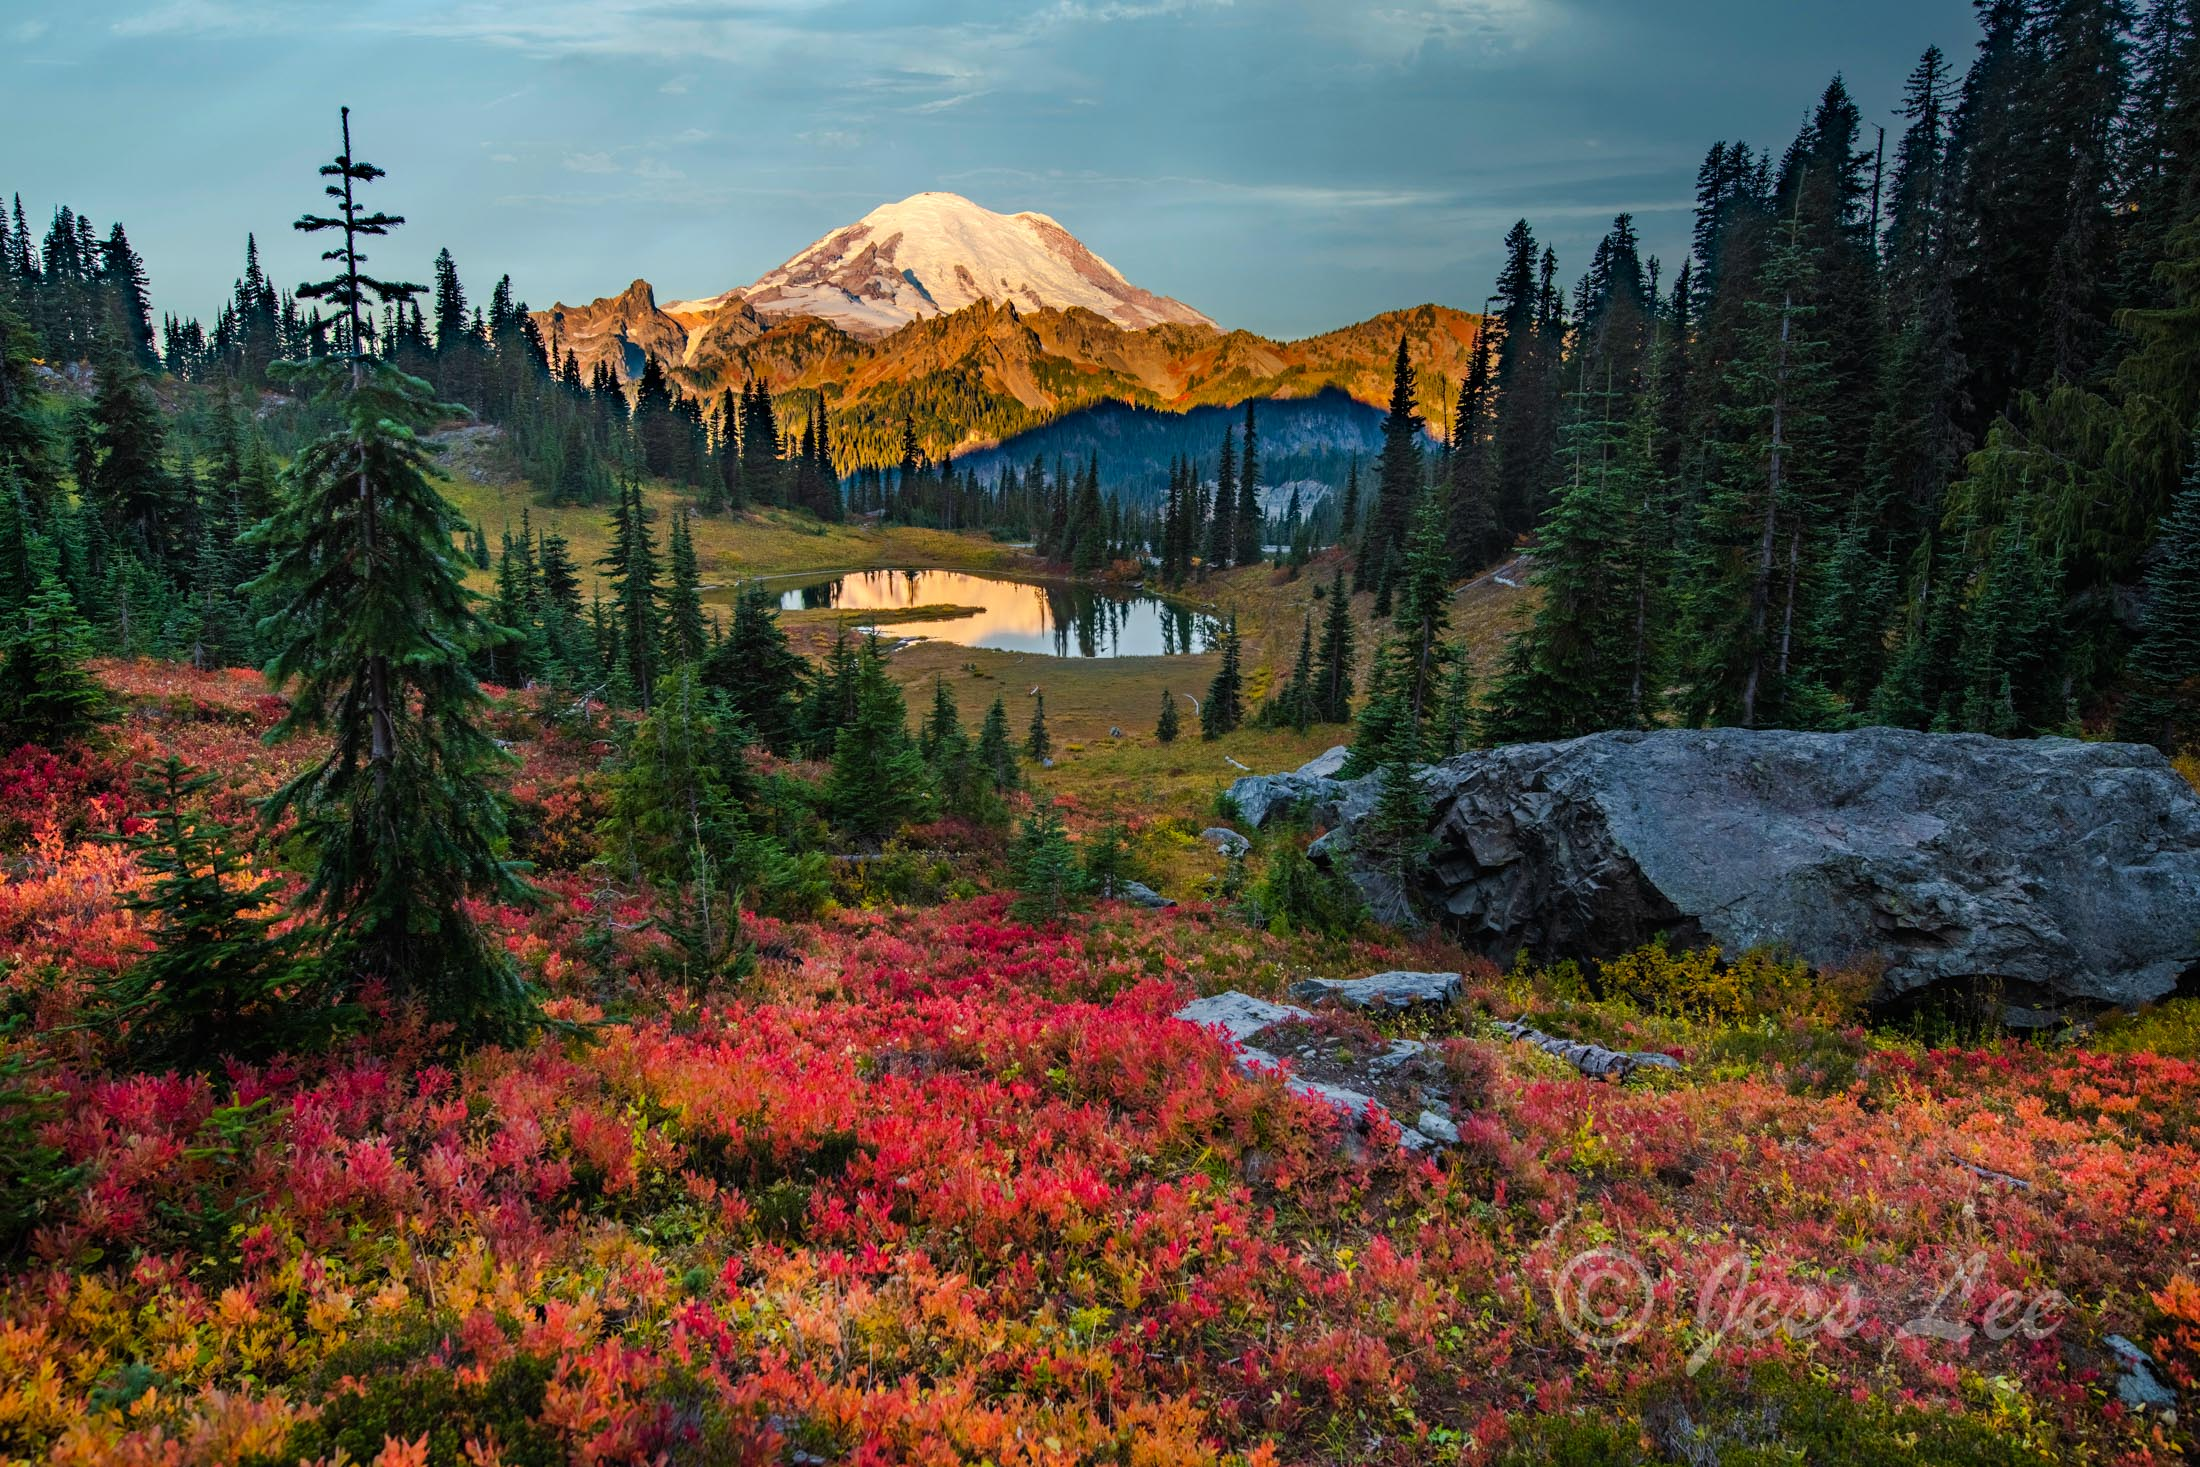 Photo, mountain, photography, Print, Fine Art, Limited edition, northwest, rainier, fall, autumn, snow-capped, beauty, fine art america,  jess lee, artist, photographer, limited edition, high quality, photo